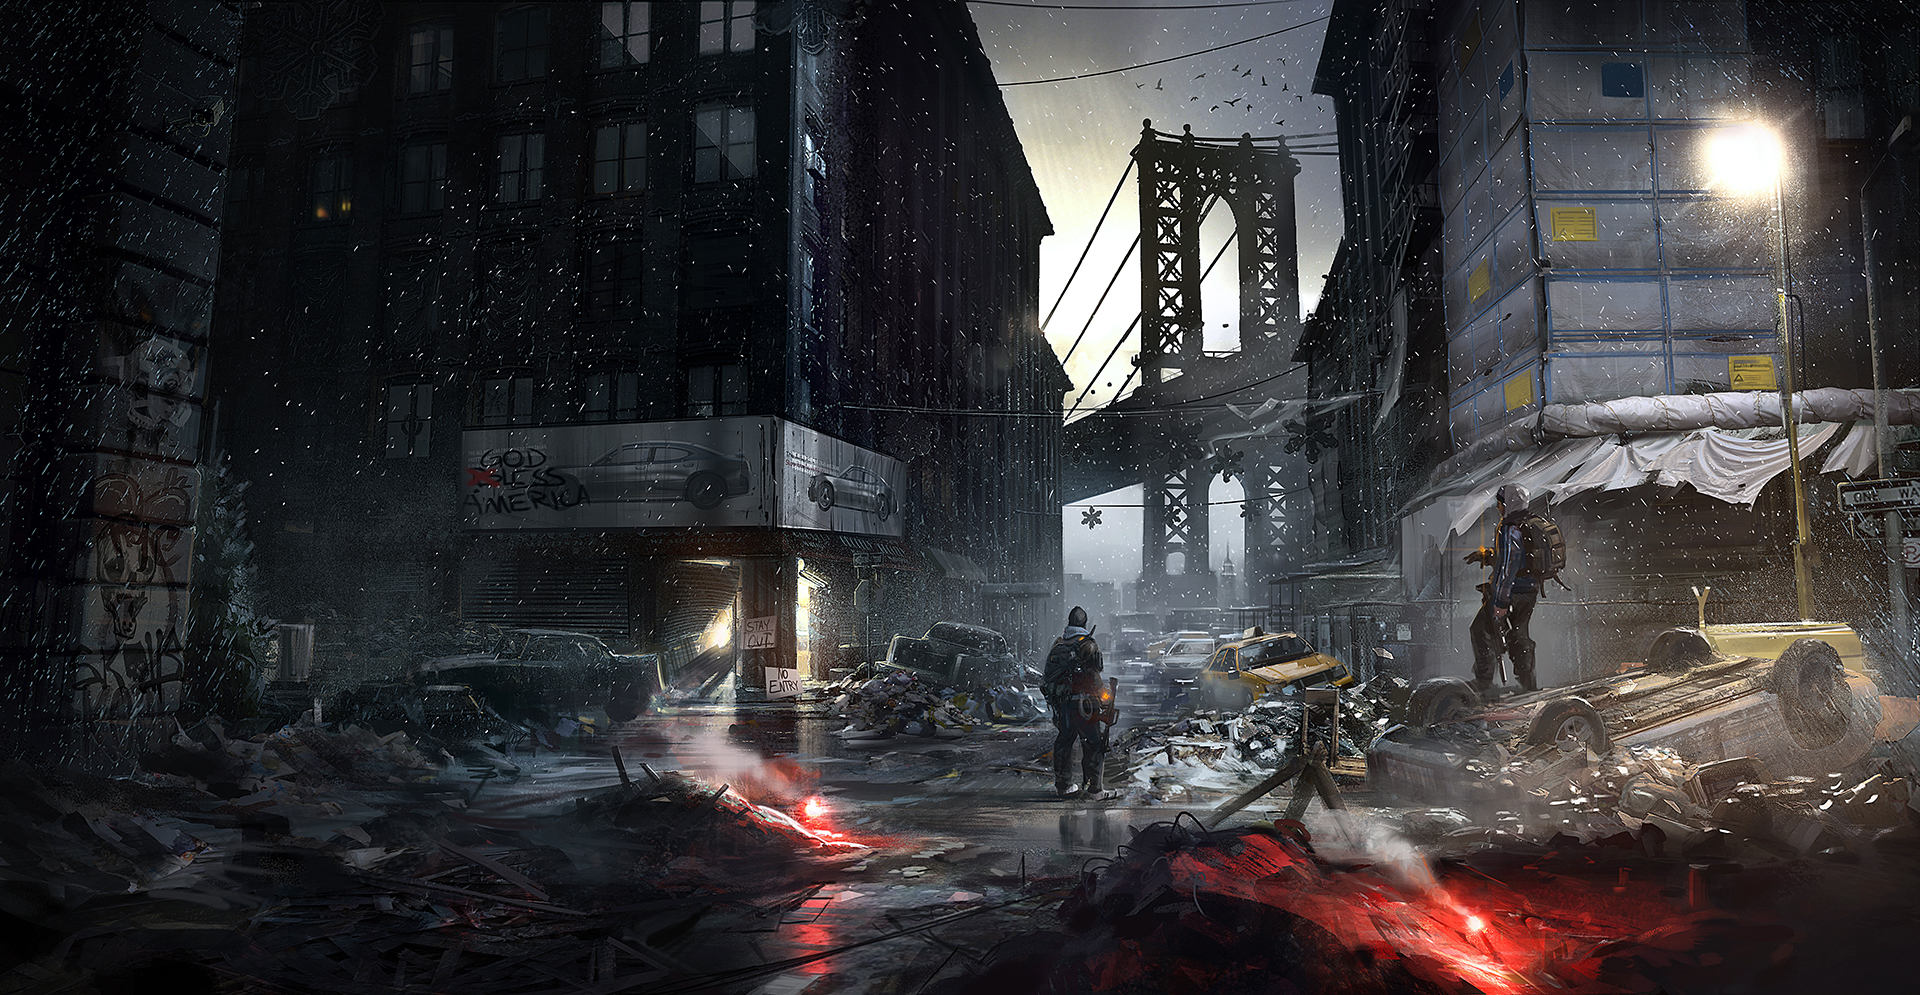 Artwork-wallpapers-and-trailers-of-Tom-Clancys-The-Division-Dumbo_Street